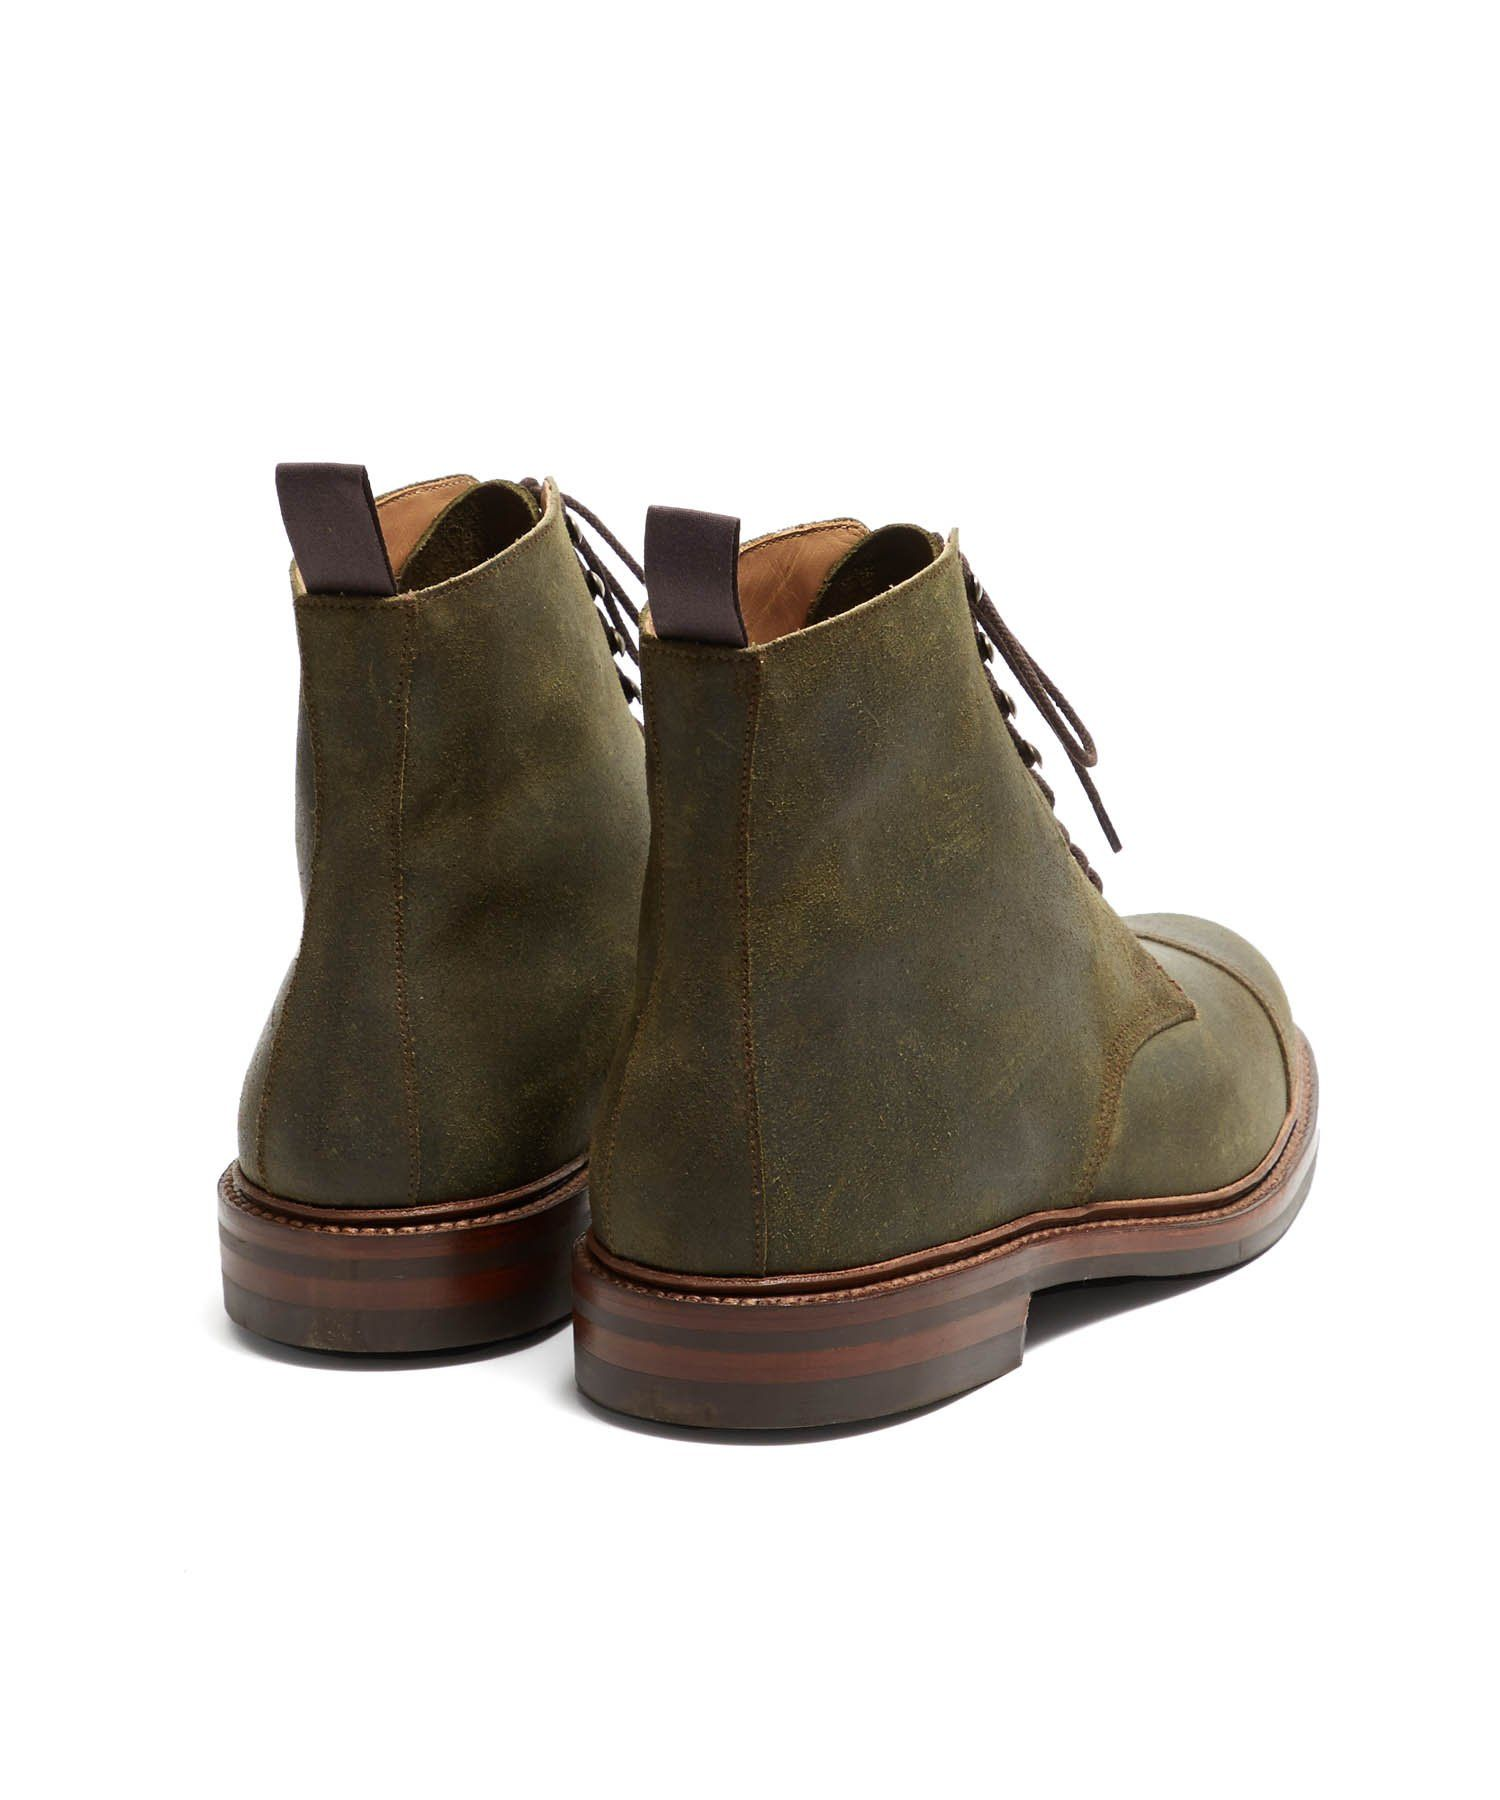 73afbf411eb Crockett and Jones Coniston Green Rough Out Suede | Products | Boots ...